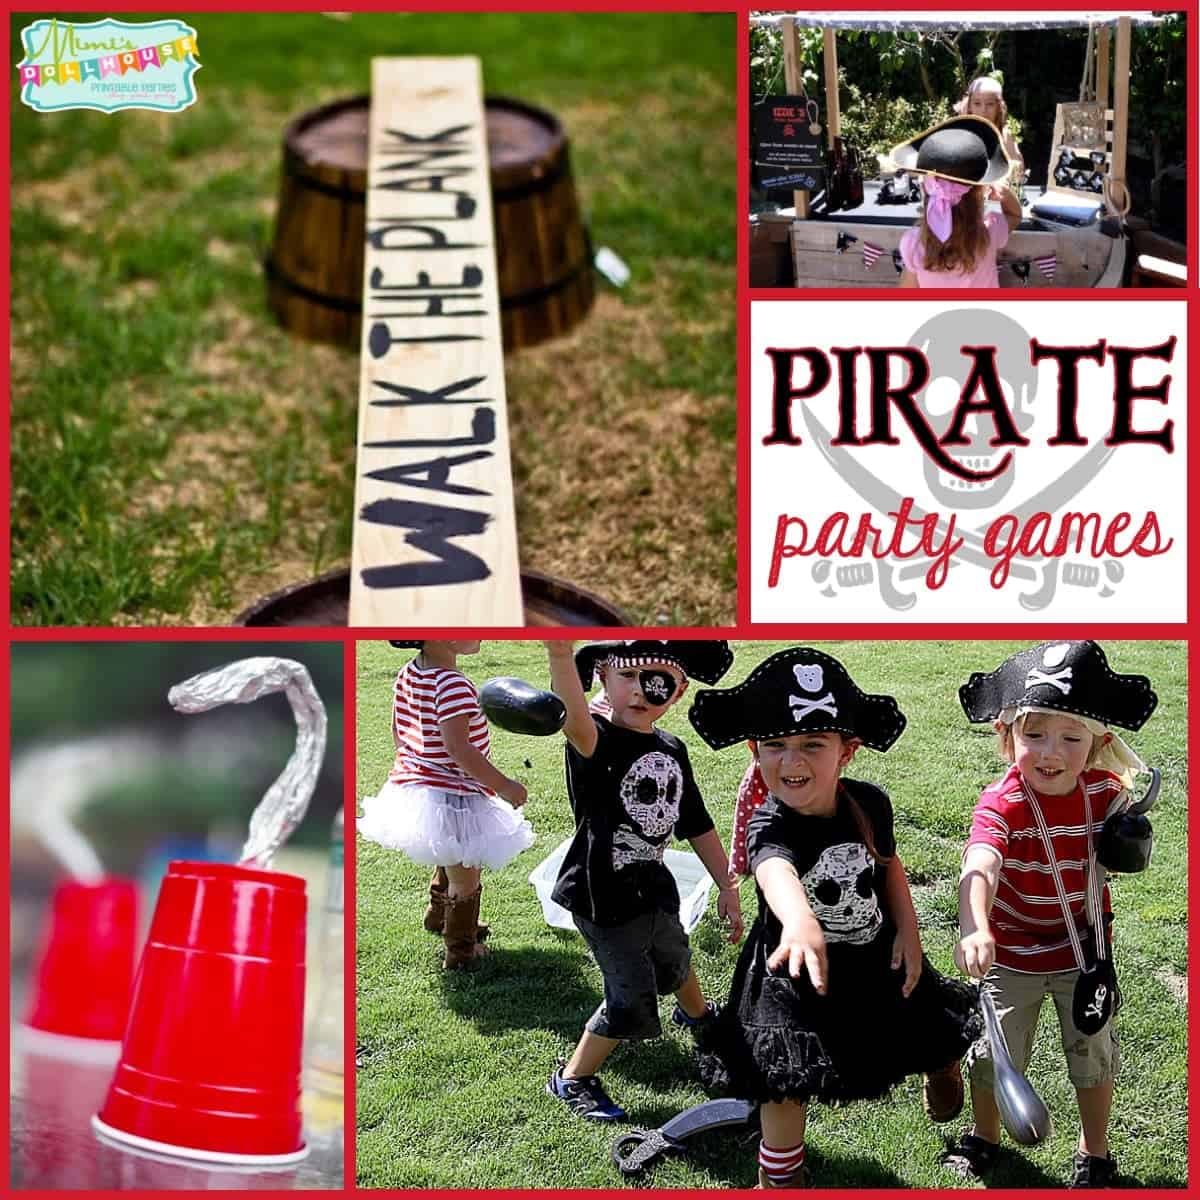 Pirate-Party-games.jpg